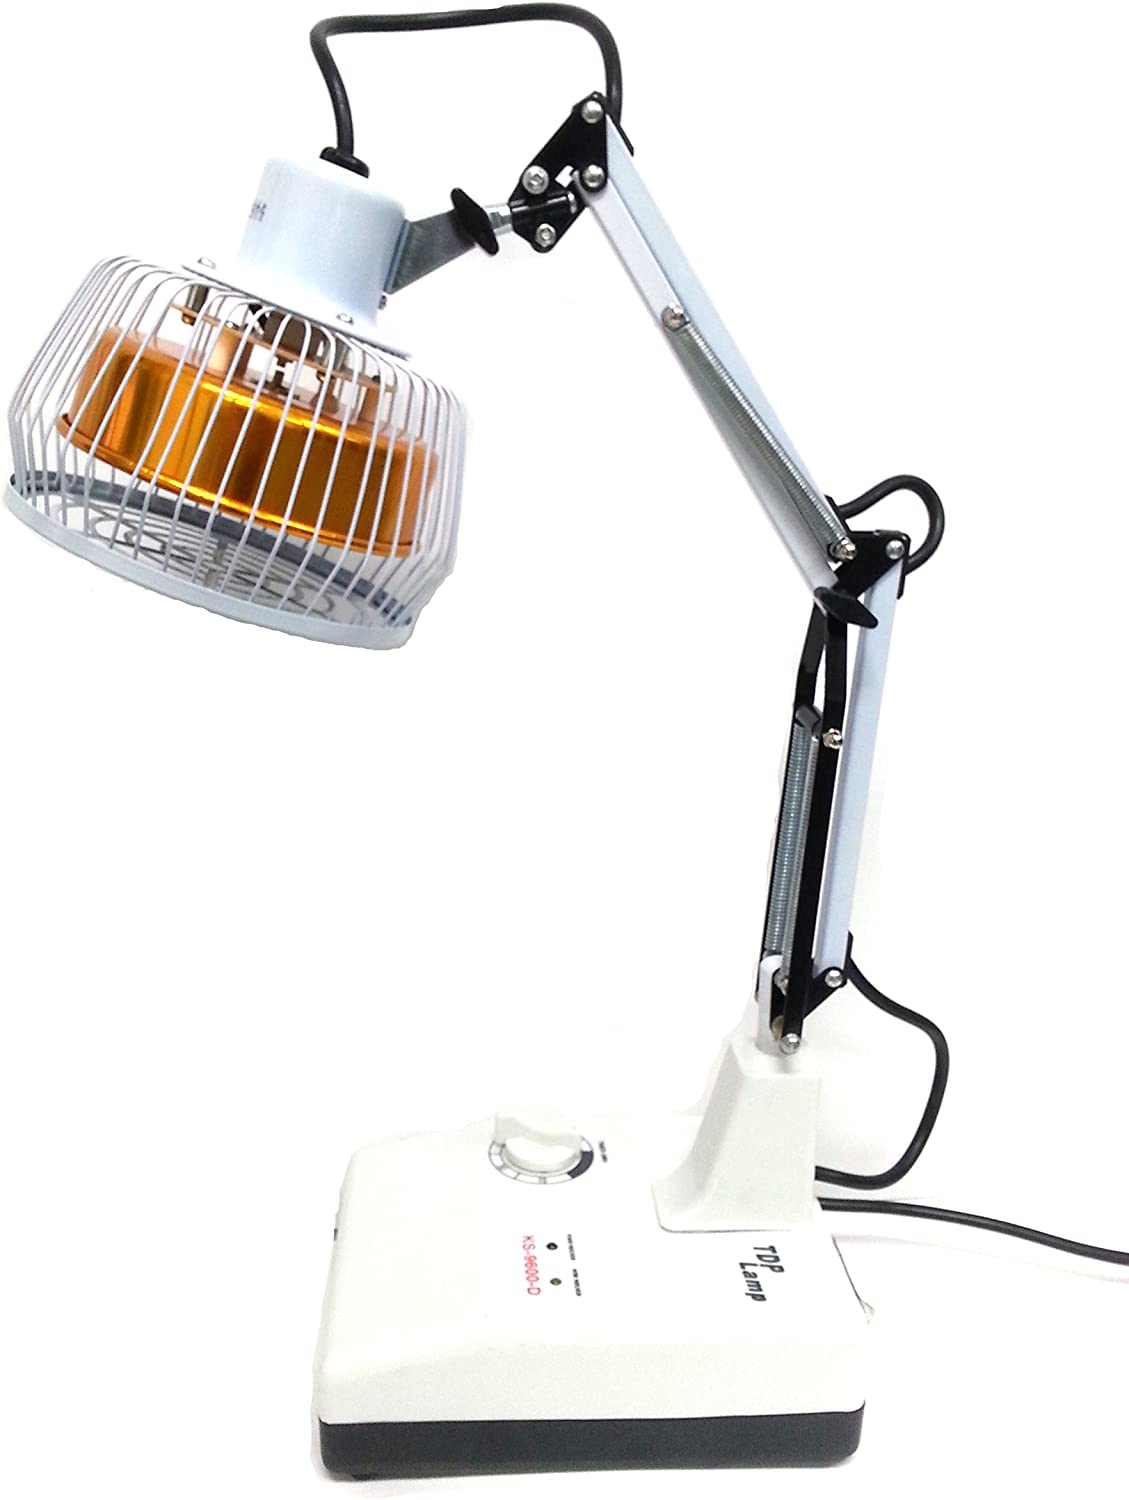 DeskTop TDP Far Infrared Heat Lamp for Mineral Therapy for